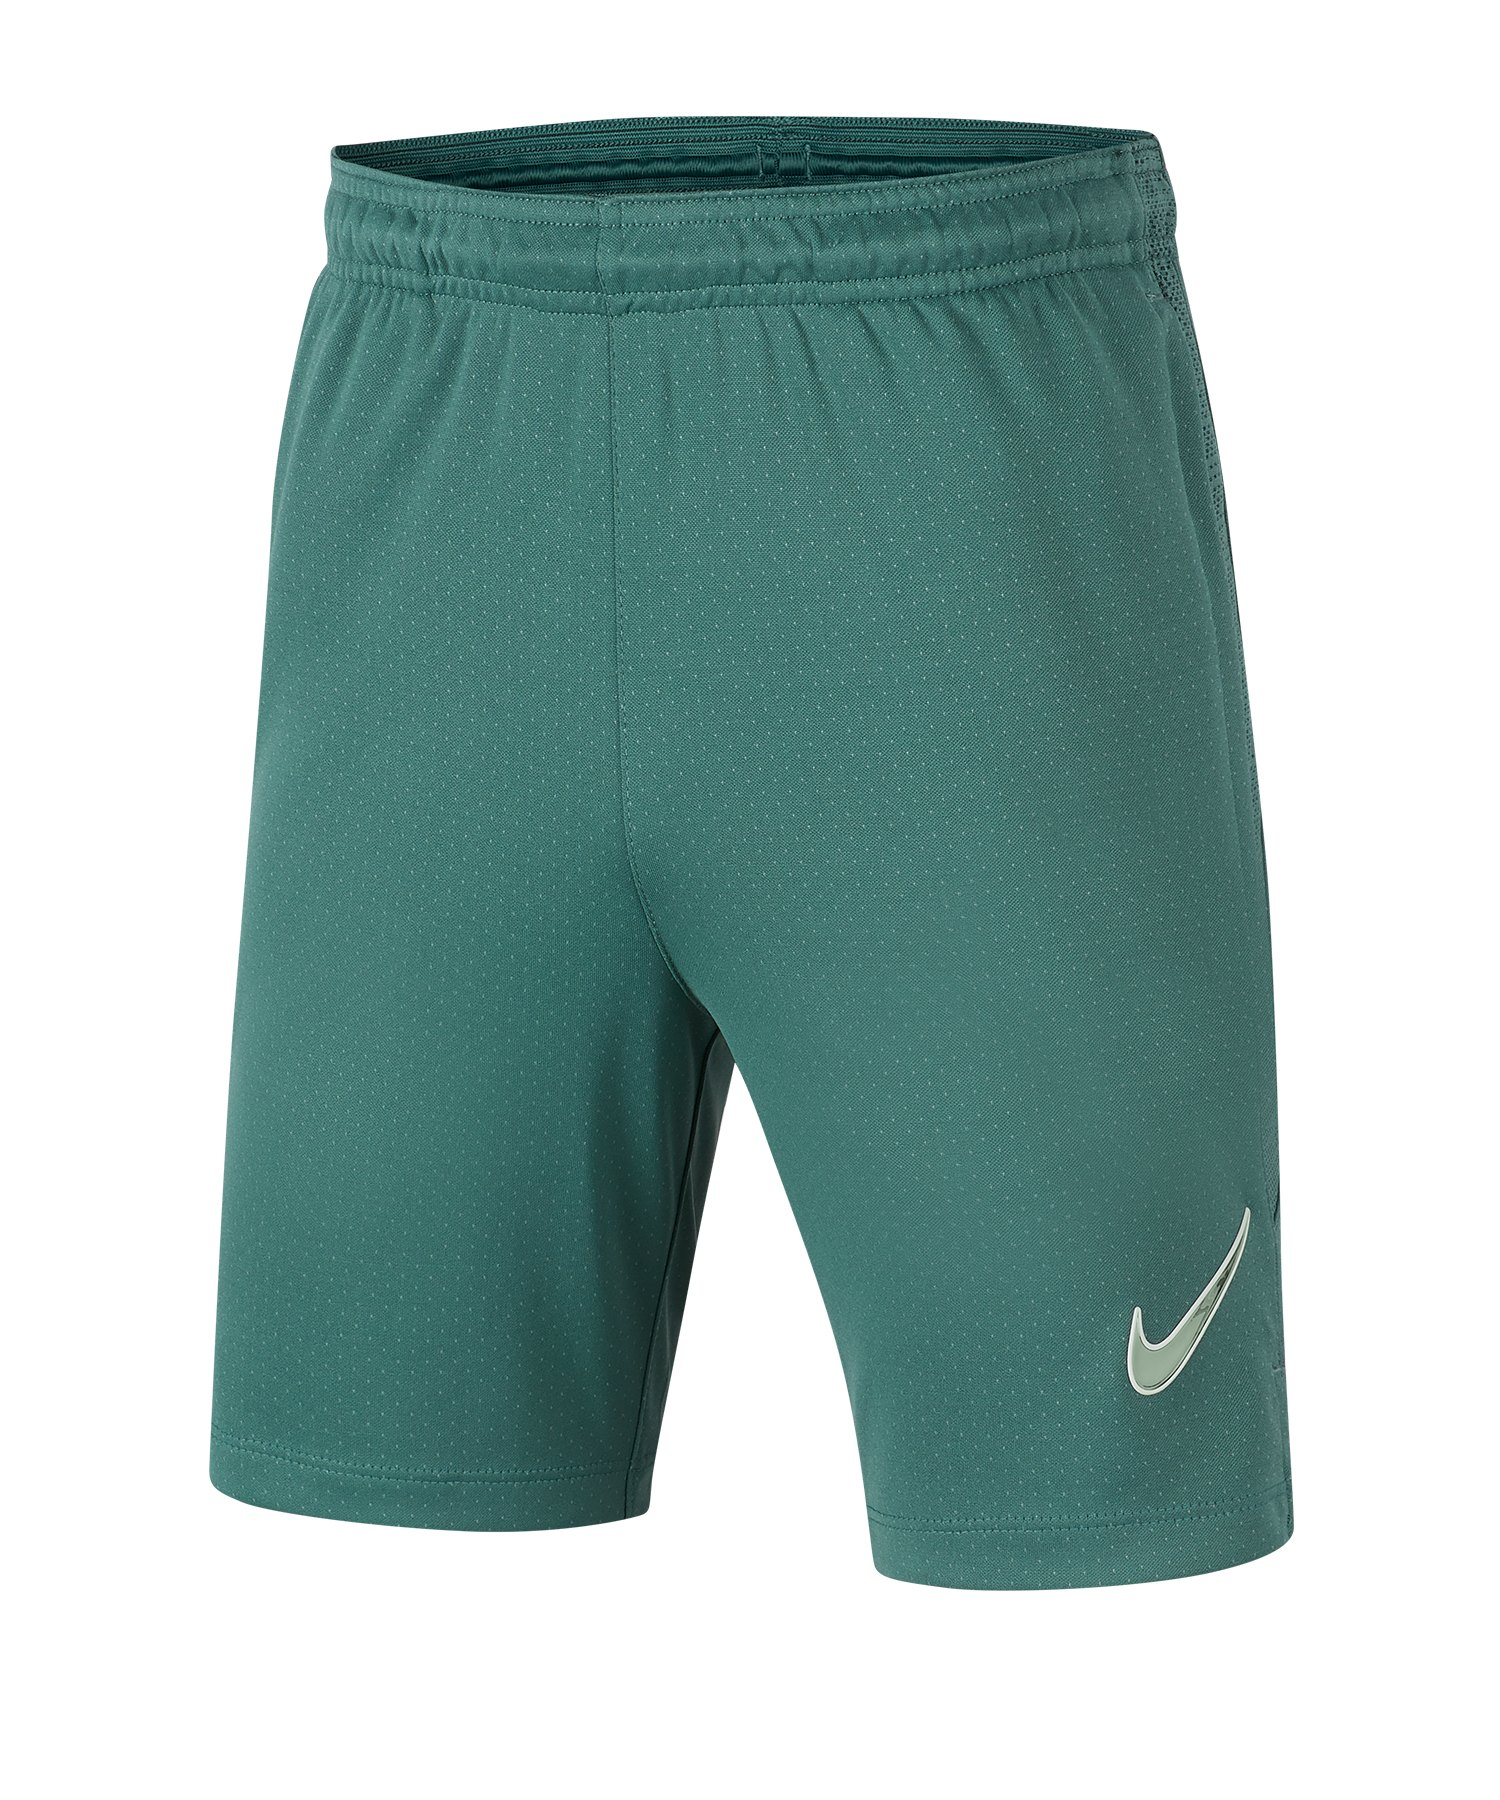 Nike Dri-FIT Strike Short Kids Grün F362 - gruen